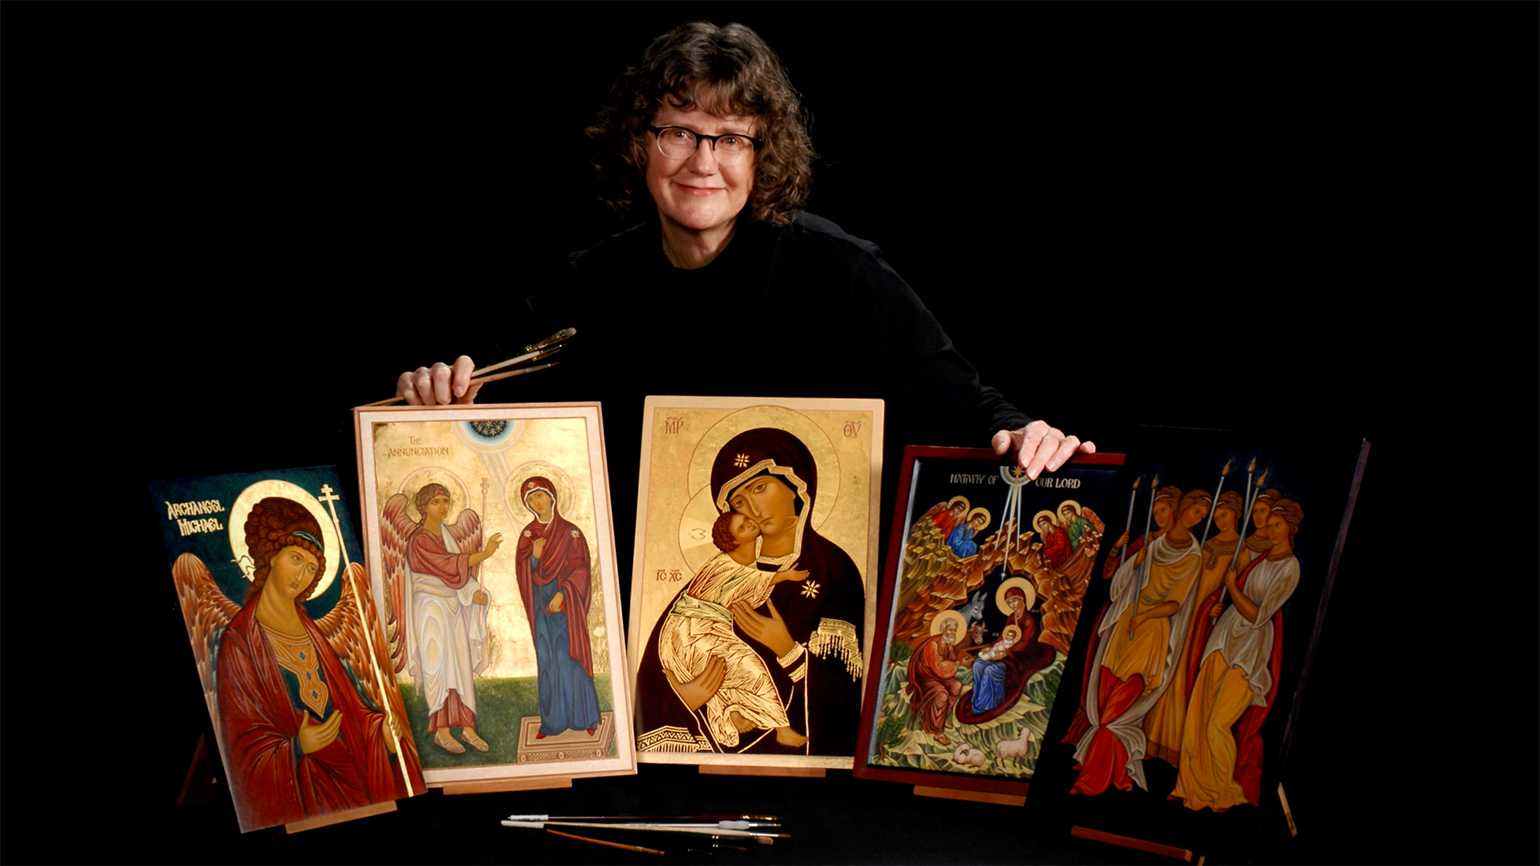 Deborah Anderson with examples of her iconography